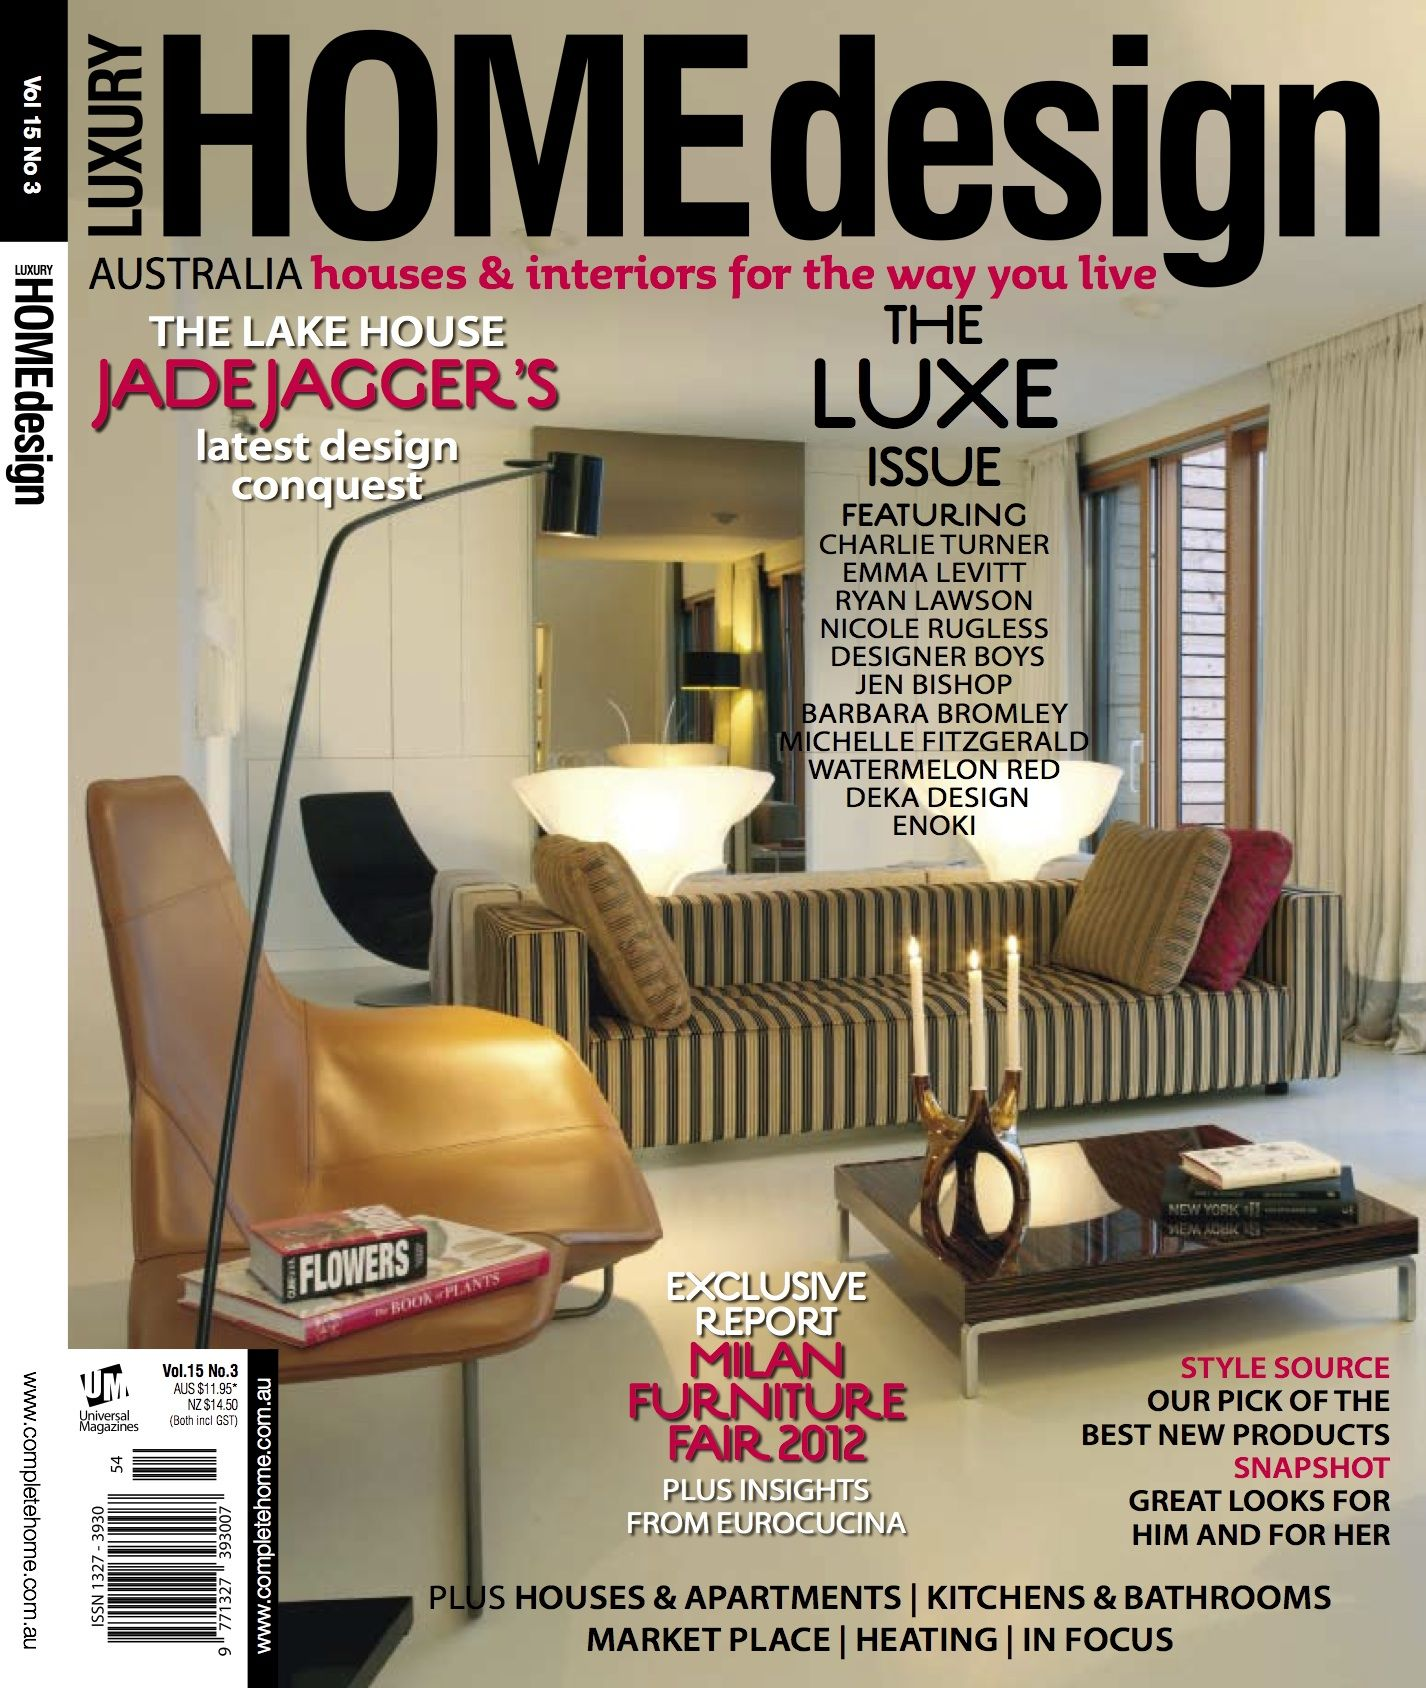 amazing homes magazines #6: Accessories, The Splendid Lake House Latest Design Luxe Issue Featutring  Milan Furniture Luxyry Home Design: Splendid Morning With The Home Design  Magazines